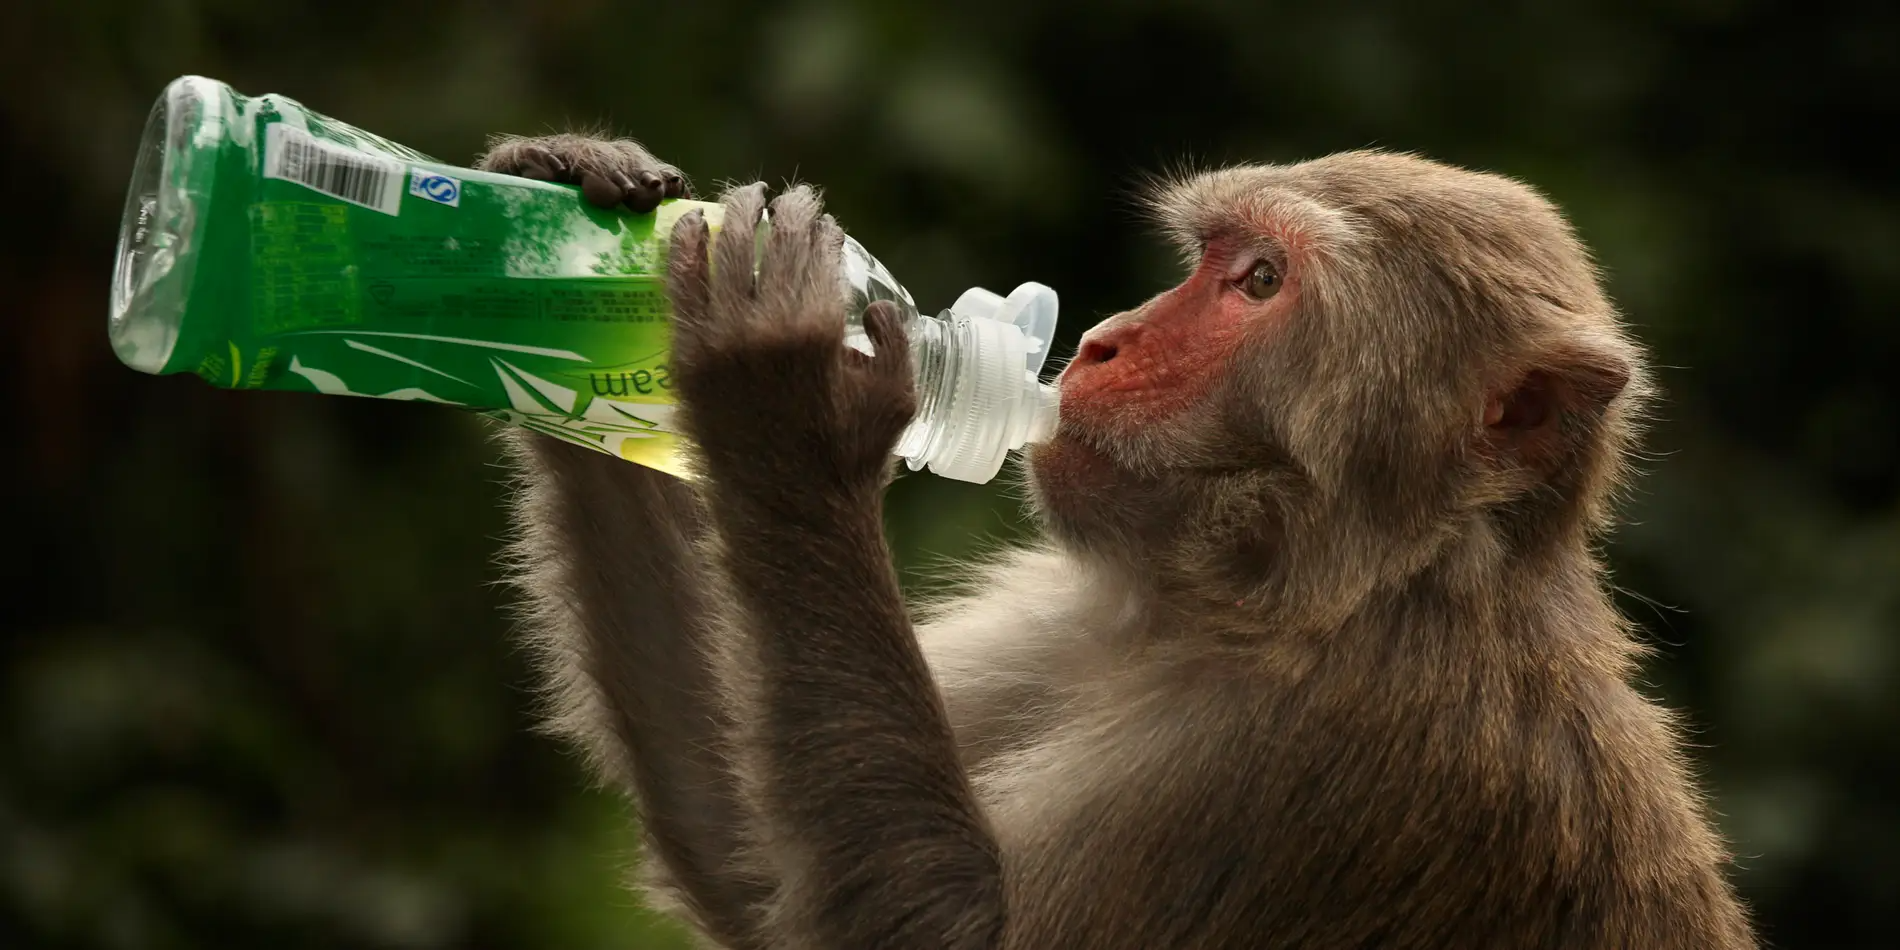 oxford developed vaccine appears to shield monkey from coronavirus